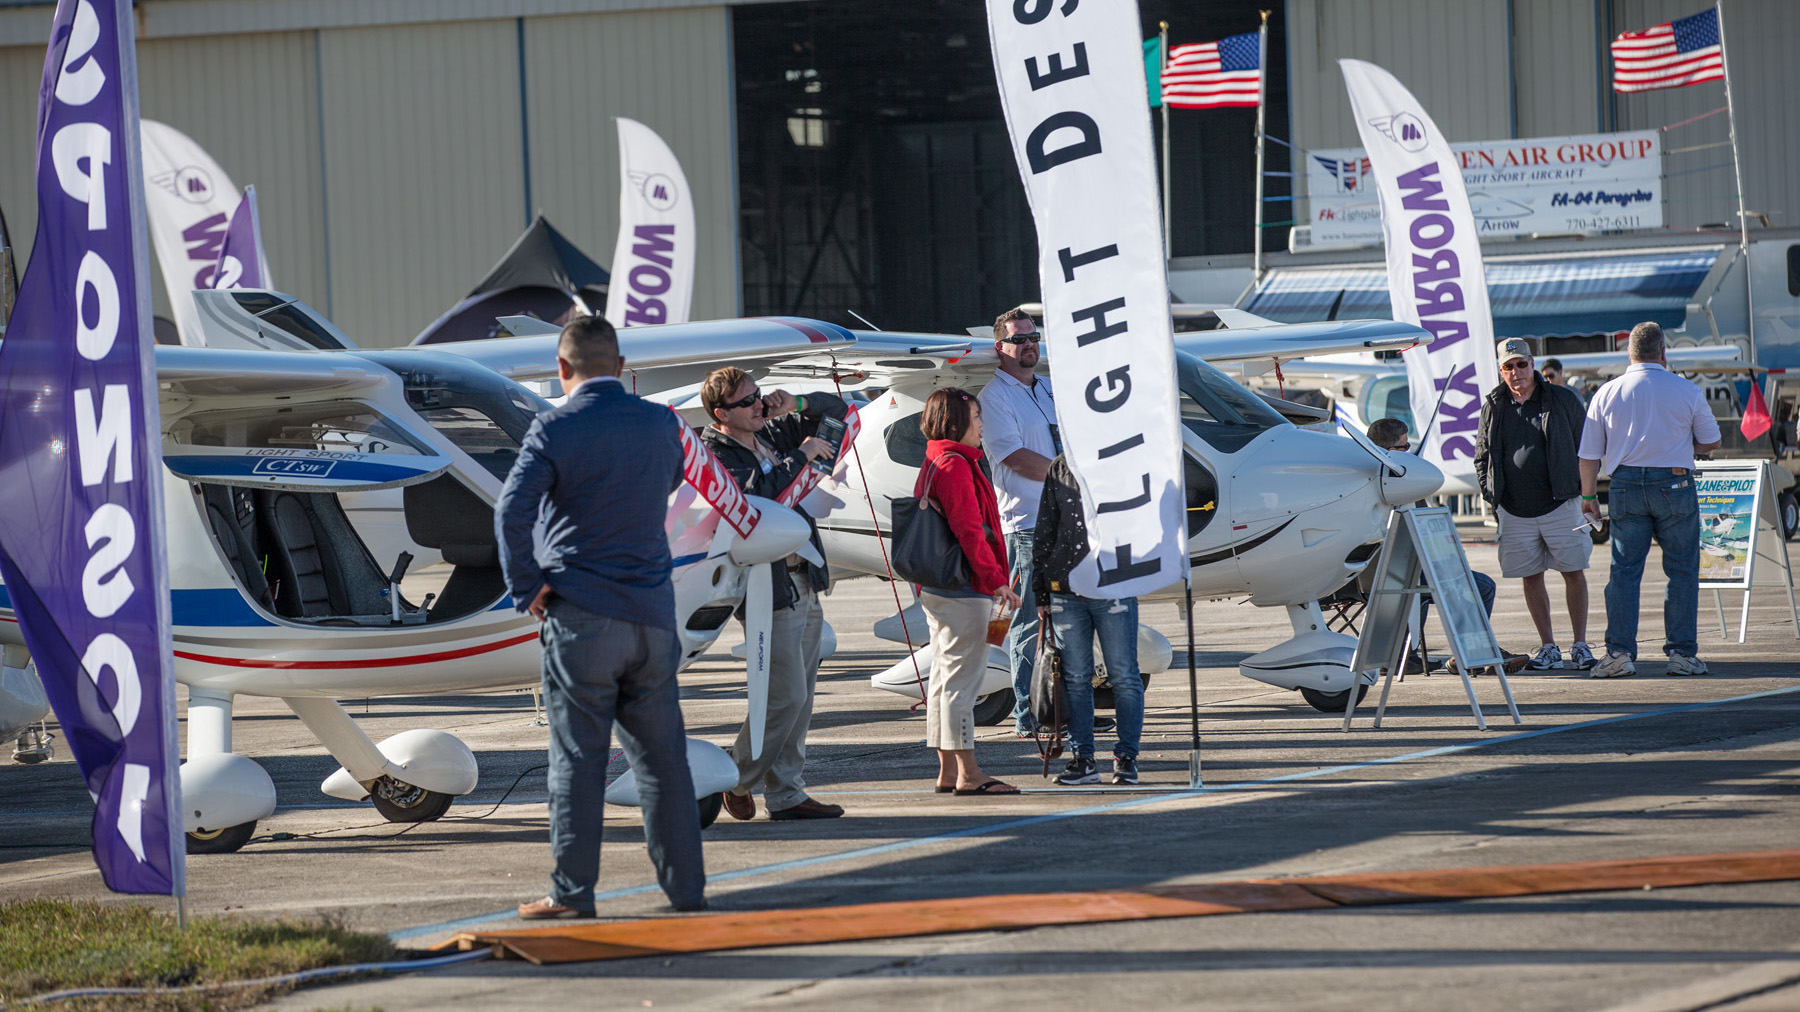 sebring Aviation Expo